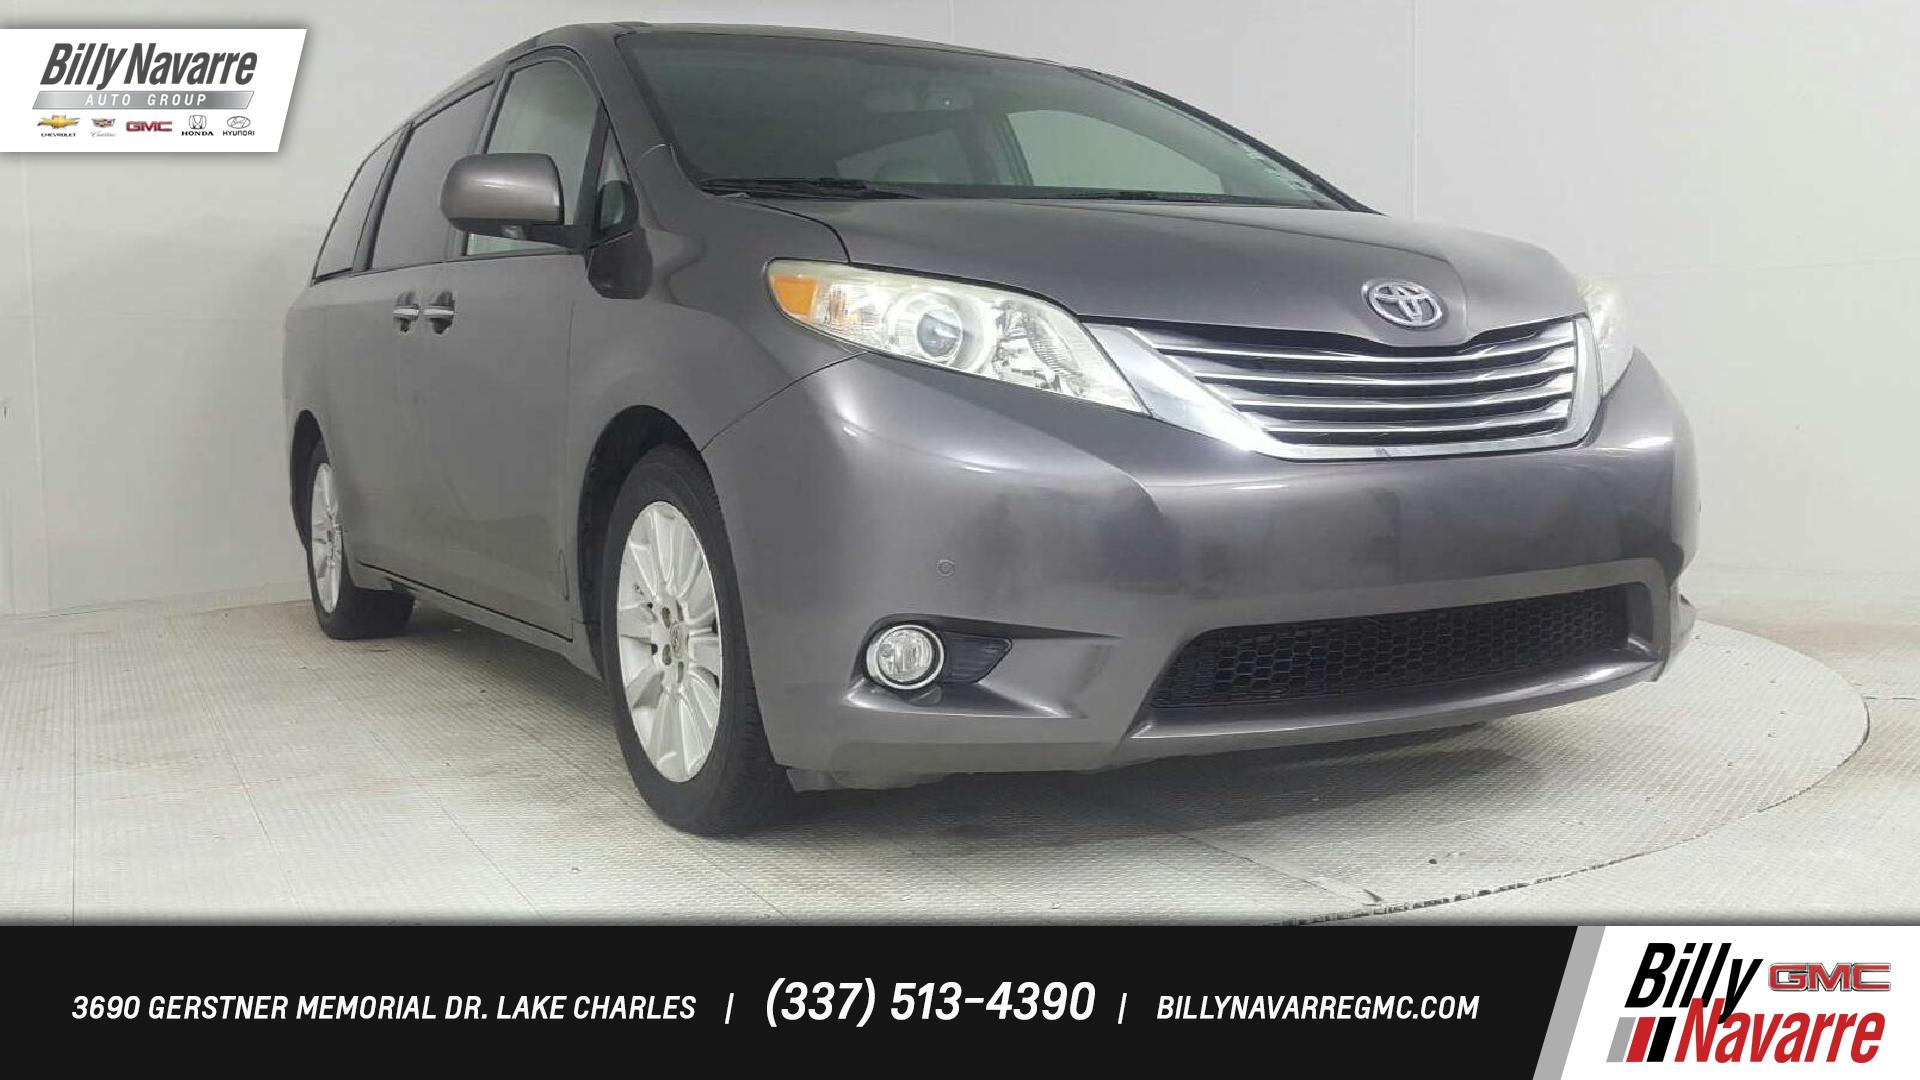 Lake Charles Toyota >> Lake Charles Toyota Fusion Vehicles For Sale